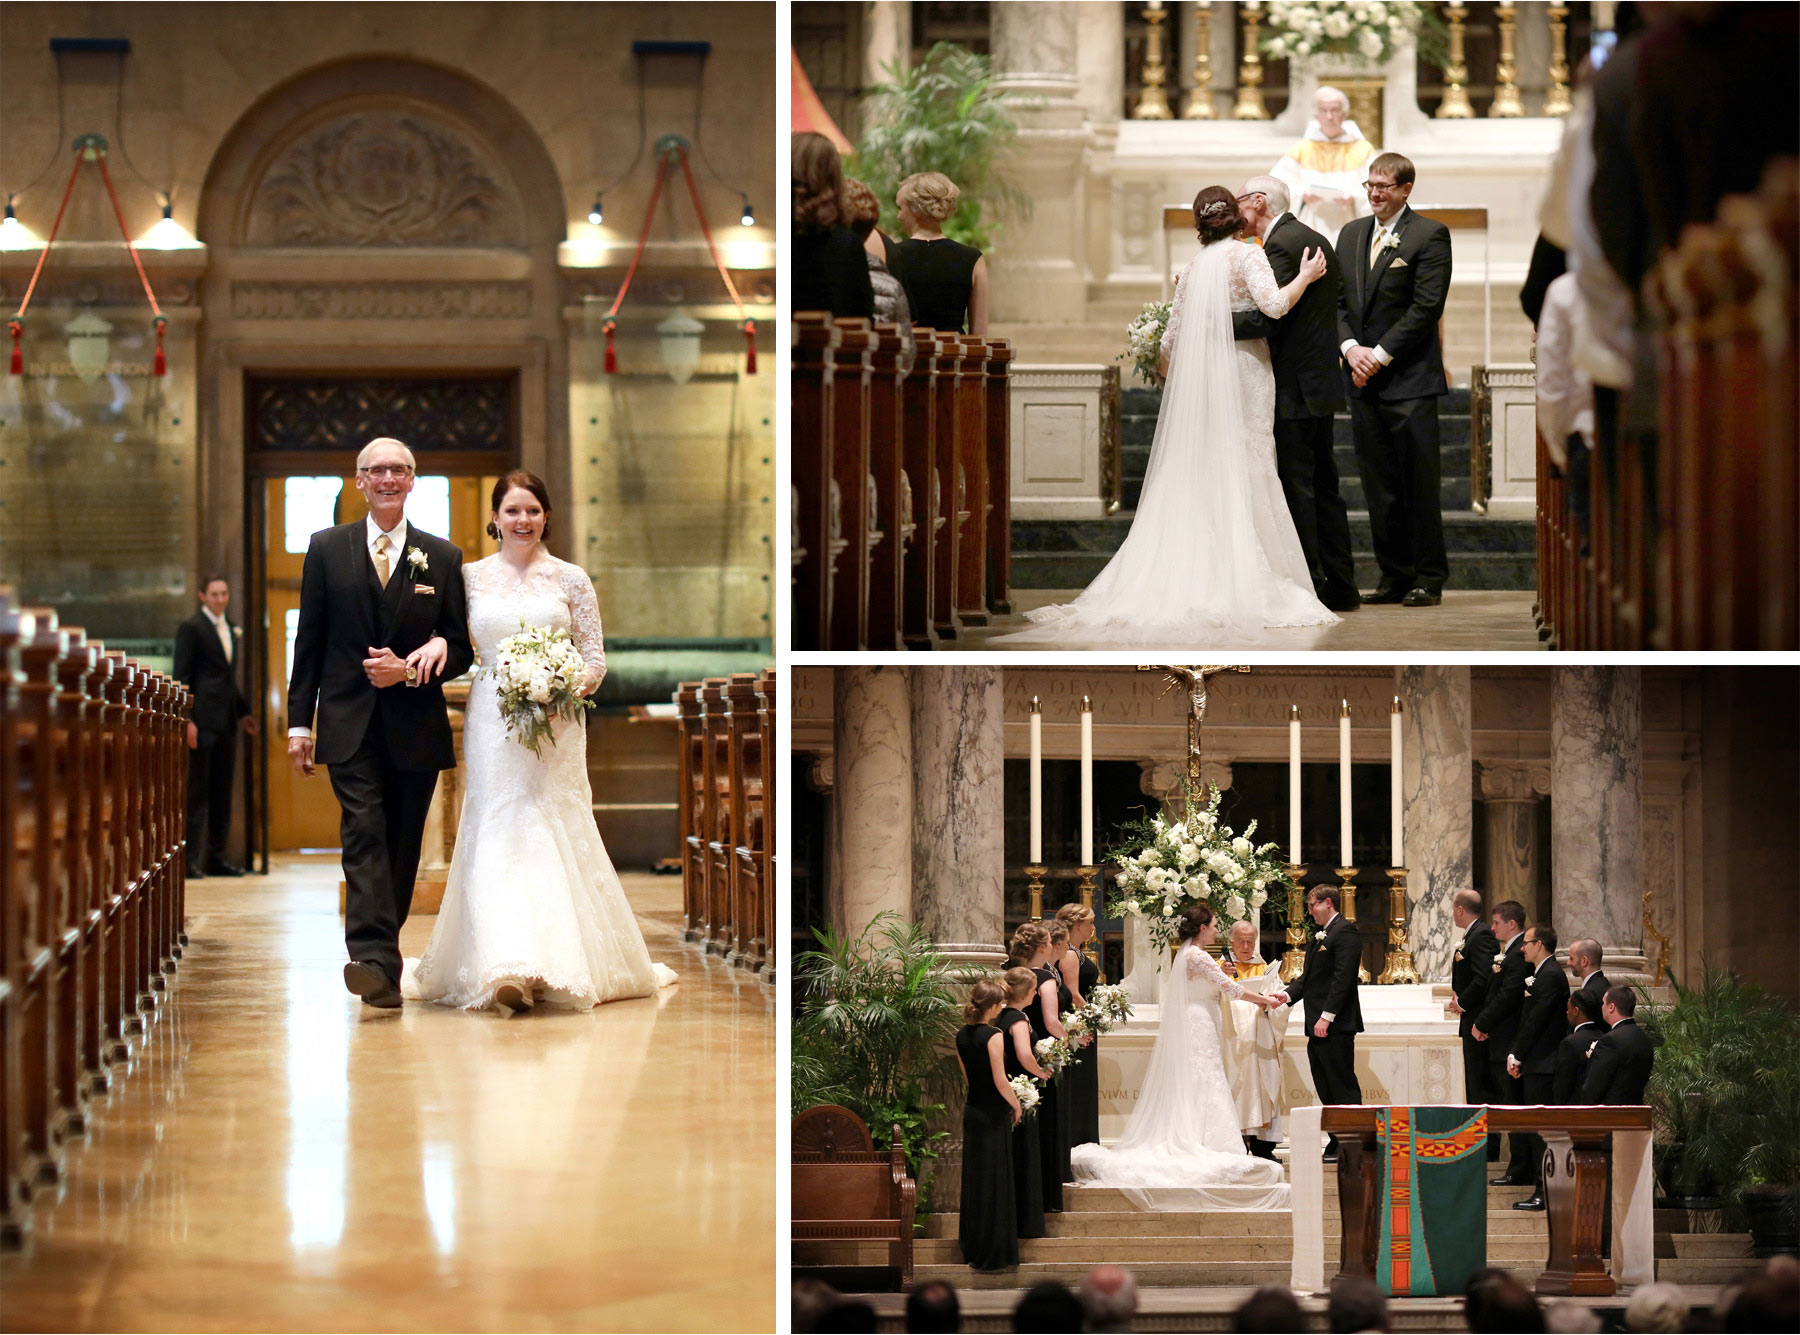 13-Minneapolis-Minnesota-Wedding-Photographer-by-Andrew-Vick-Photography-Winter-Basilica-of-Saint-Mary-Church-Bride-Groom-Father-Parents-Processional-Vows-Sara-and-Rob.jpg